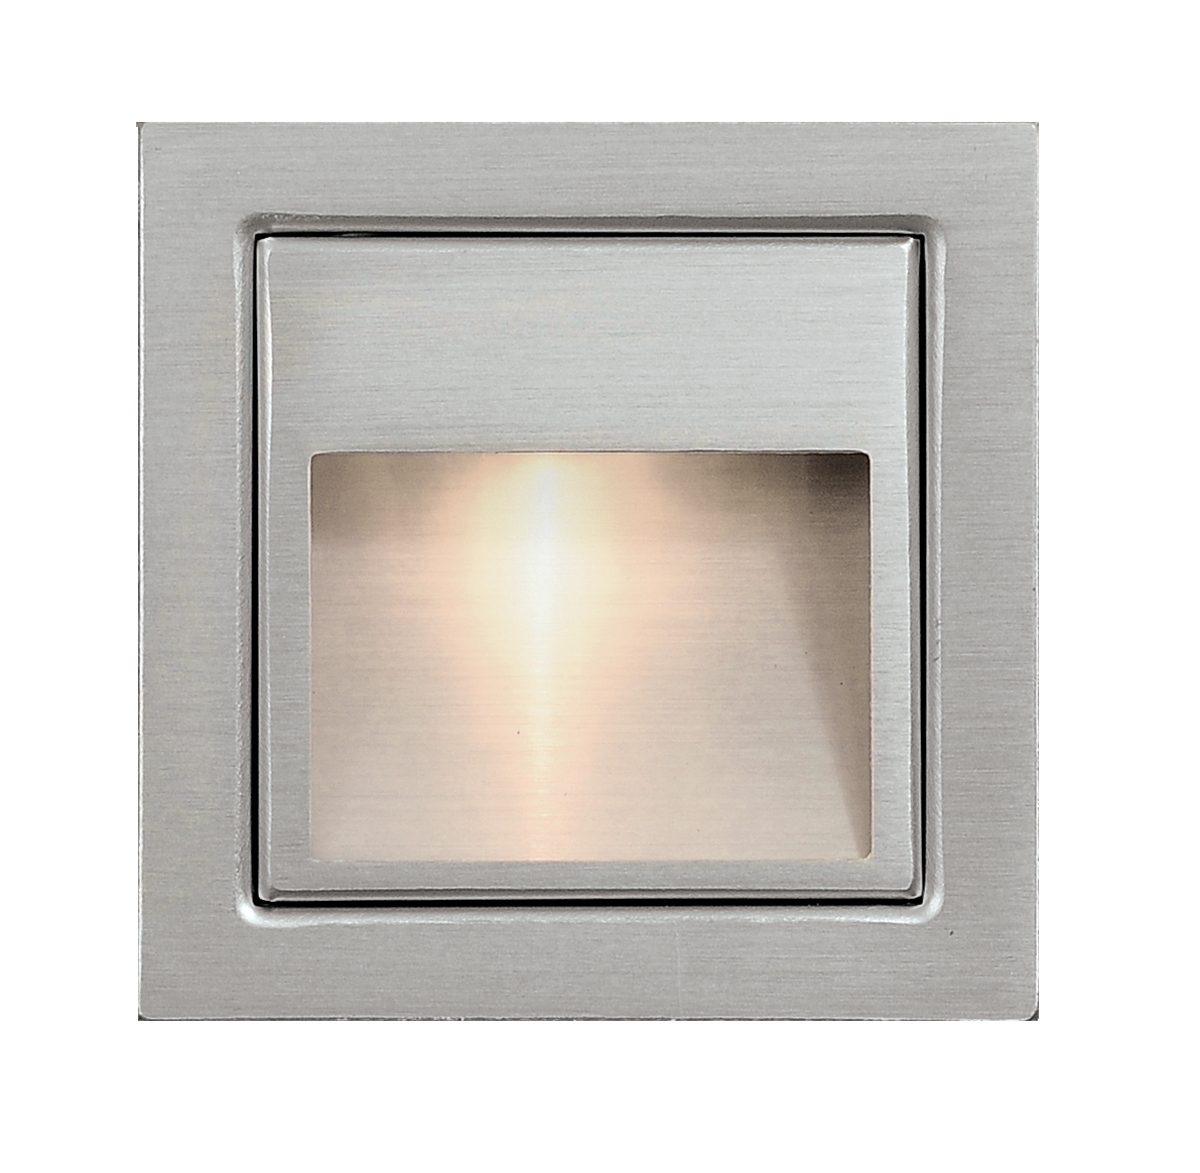 Step Halogen Slave Wall Recessed by Edge Lighting step-kit-h1s-sa